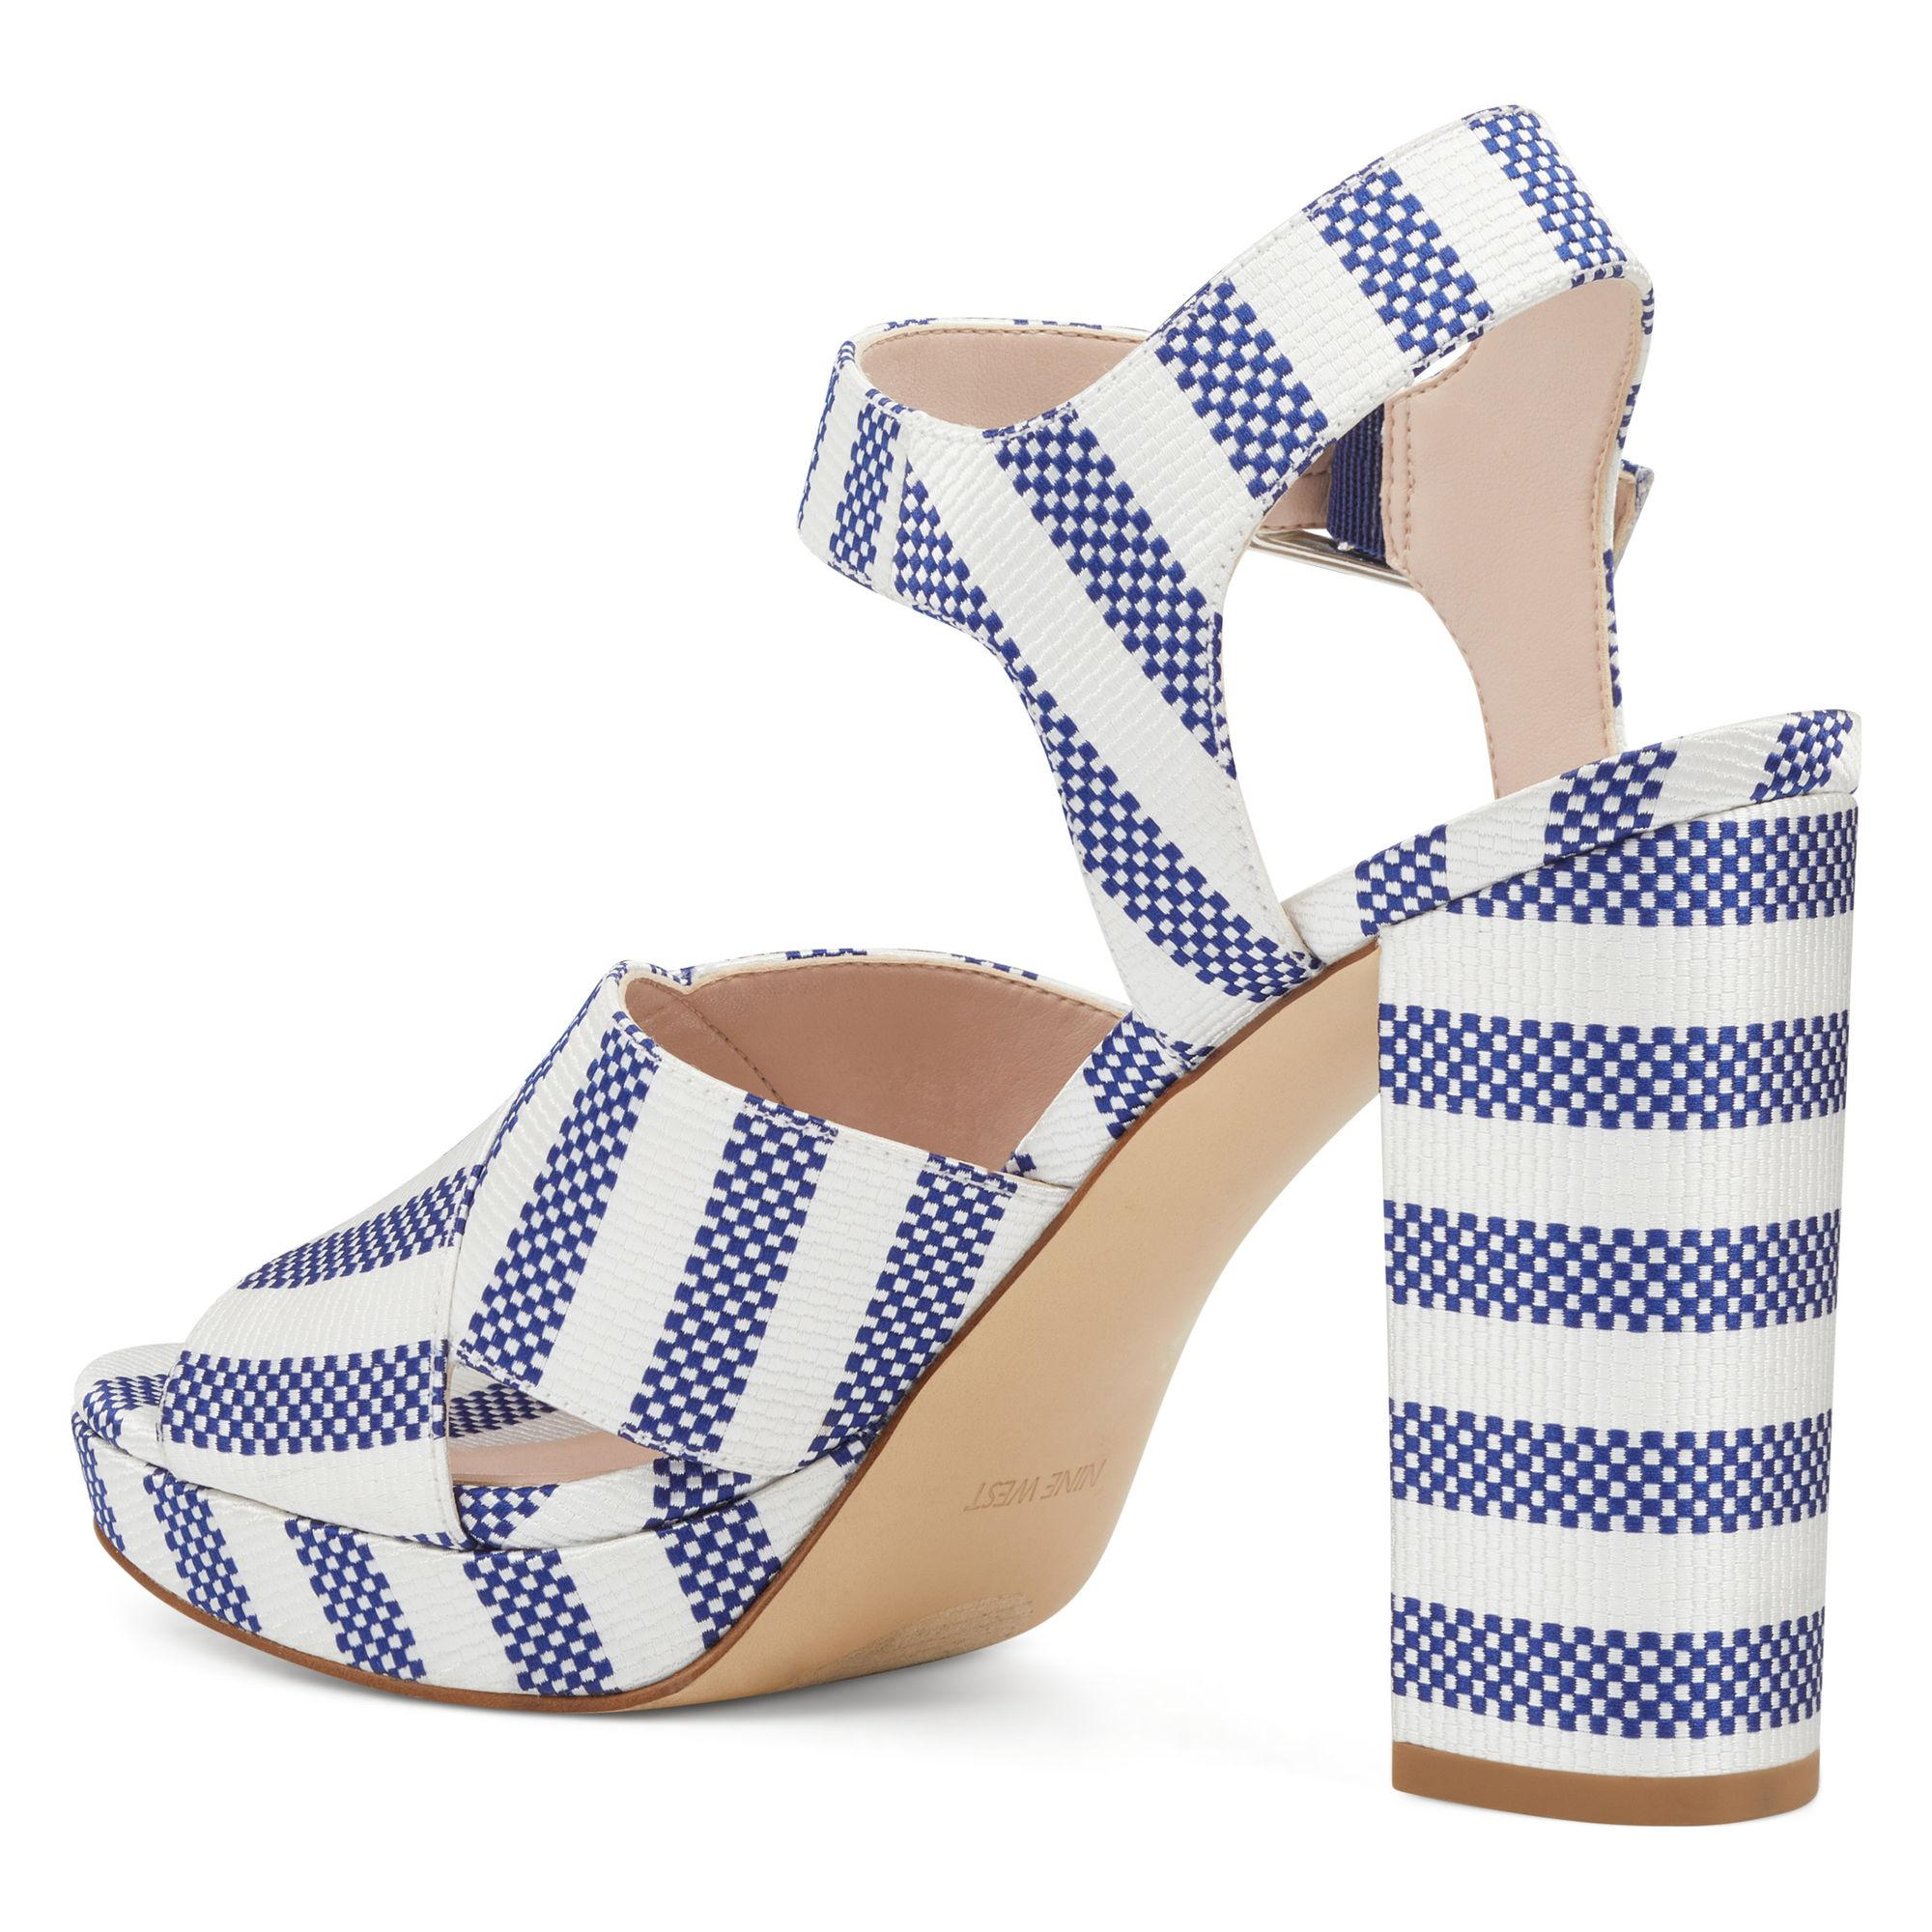 c6a8c54967f7 Lyst - Nine West Jimar Ankle-strap Platform Sandals in Blue